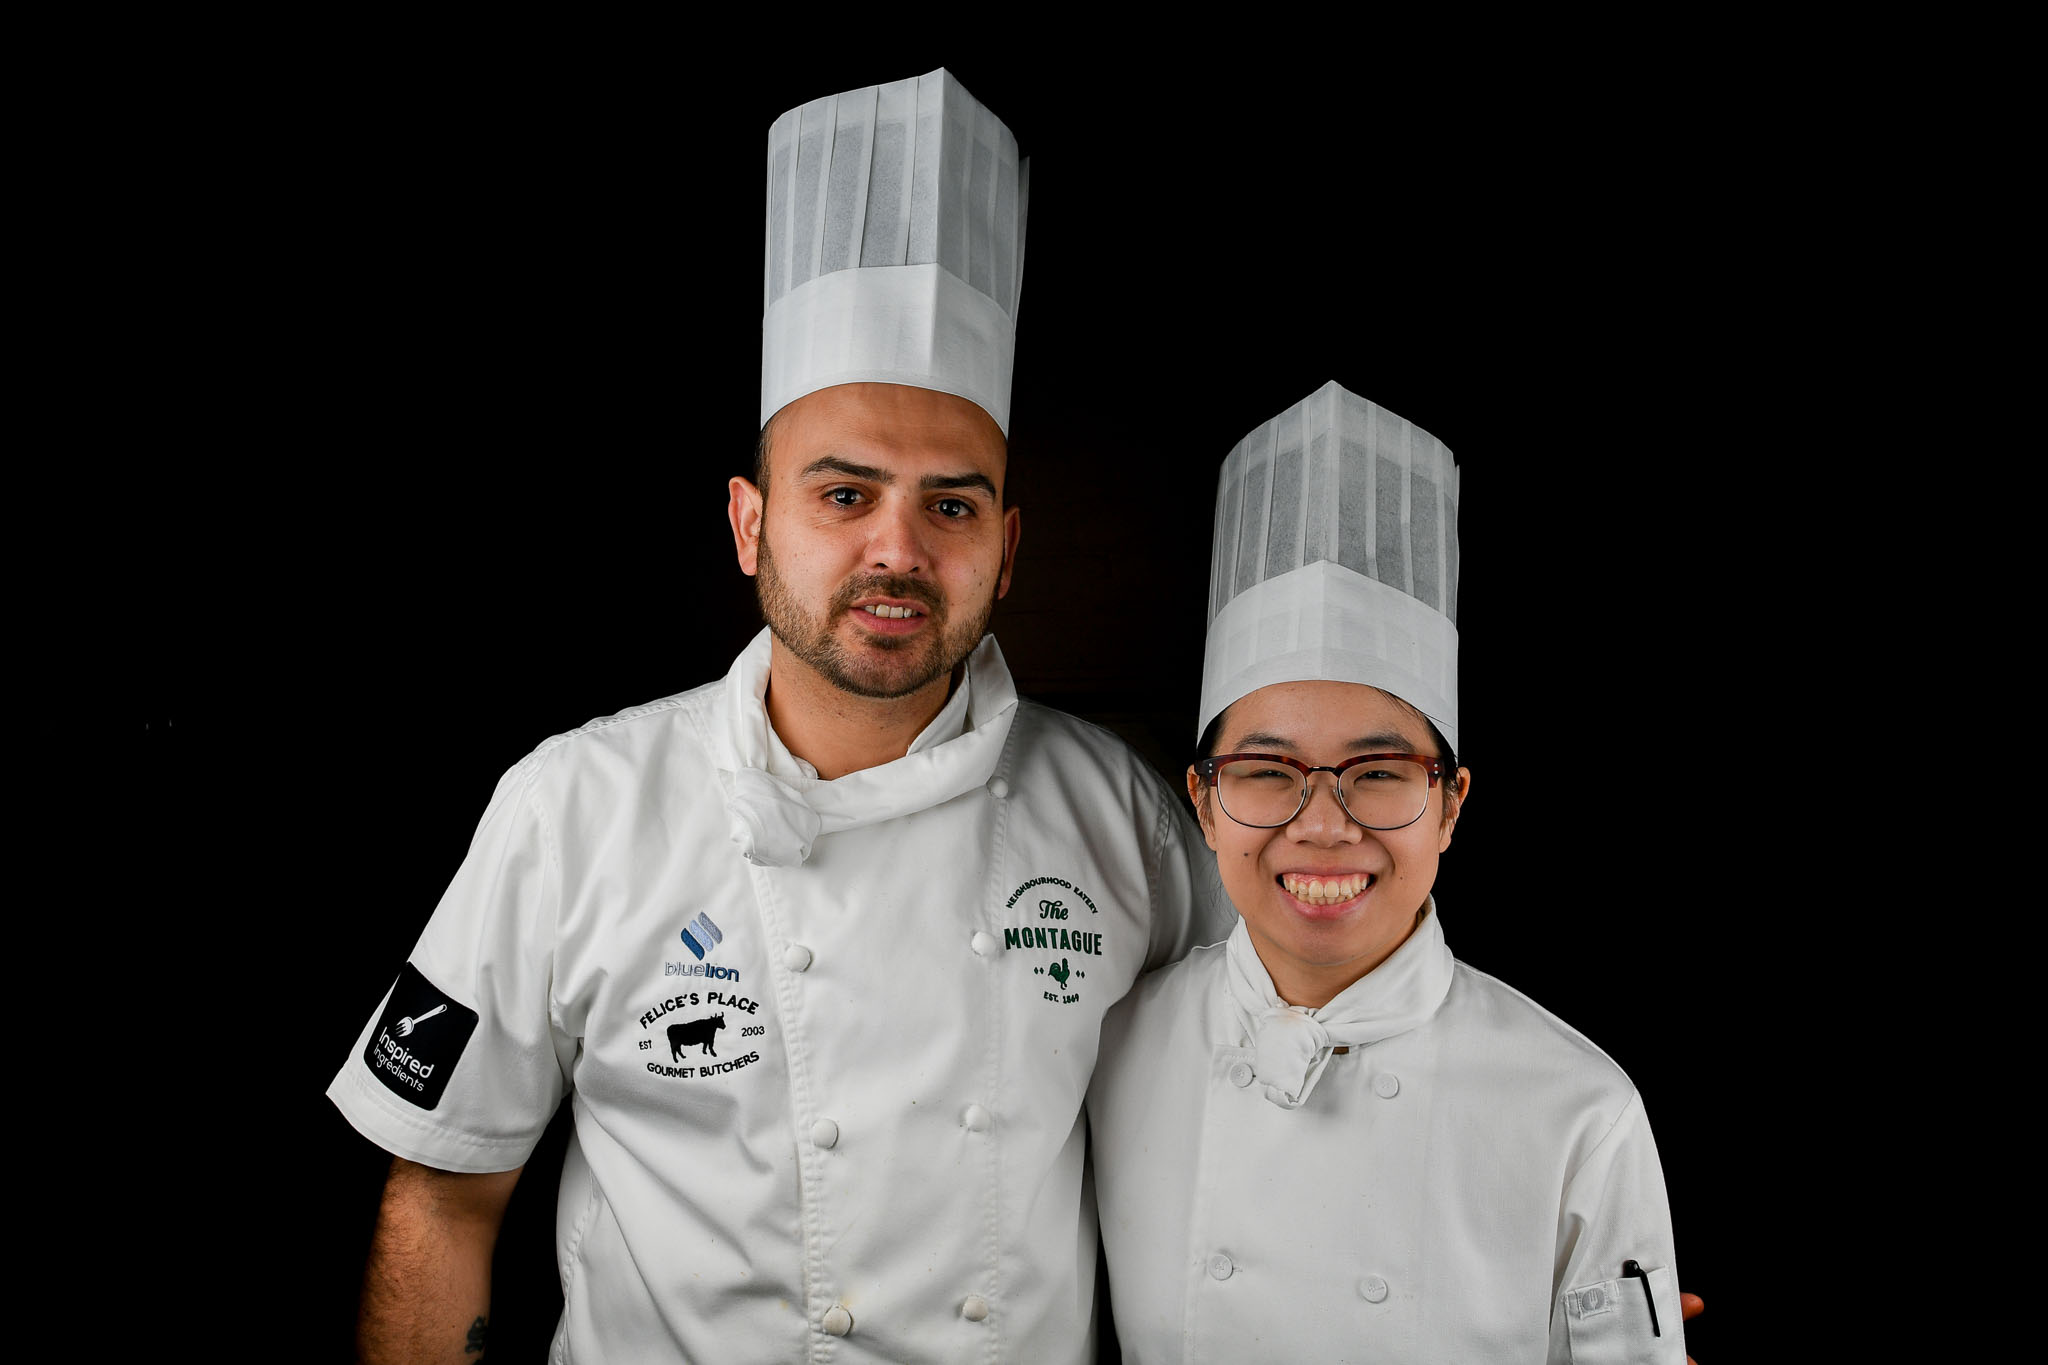 Melbourne, 30 May 2017 - Daniel Soto and Kimberly Tang commis chef of the Montague Hotel in South Melbourne pose for a photograph at the Australian selection trials of the Bocuse d'Or culinary competition held during the Food Service Australia show at the Royal Exhibition Building in Melbourne, Australia. Photo Sydney Low